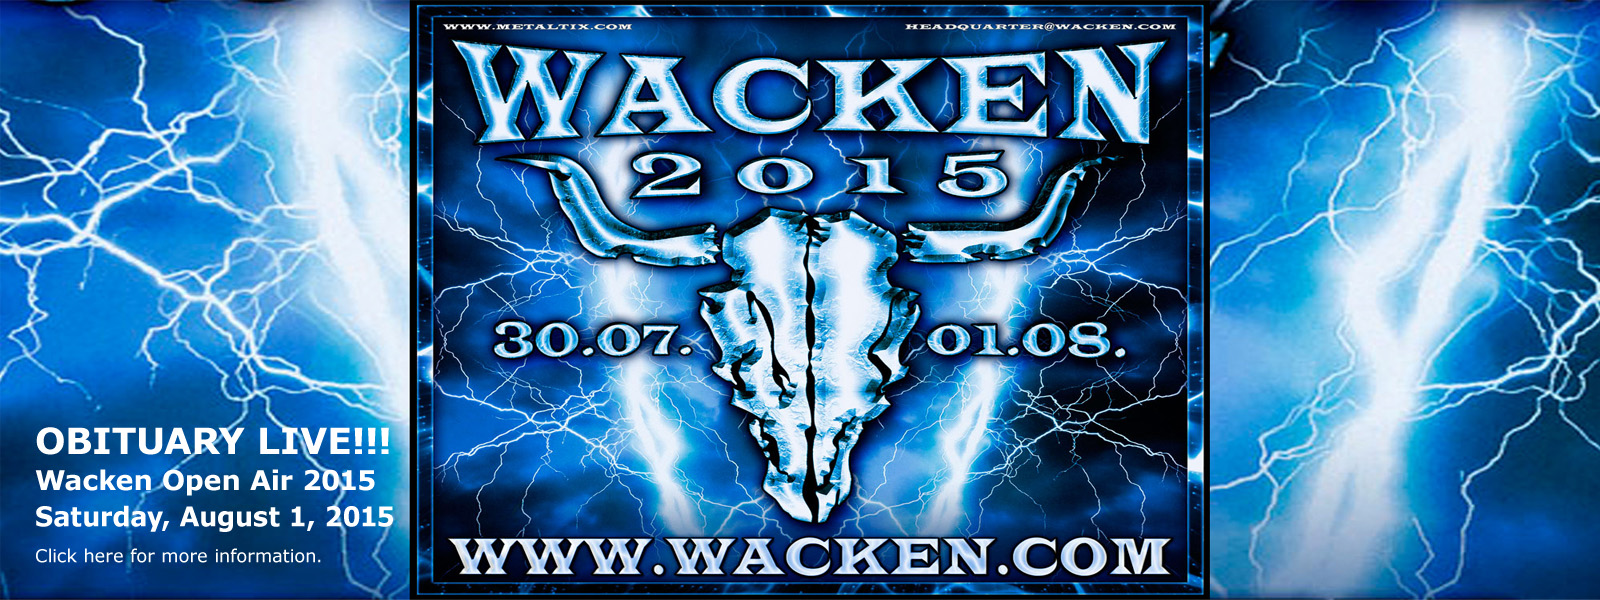 Wacken Open Air 2015 - Wacken, Germany